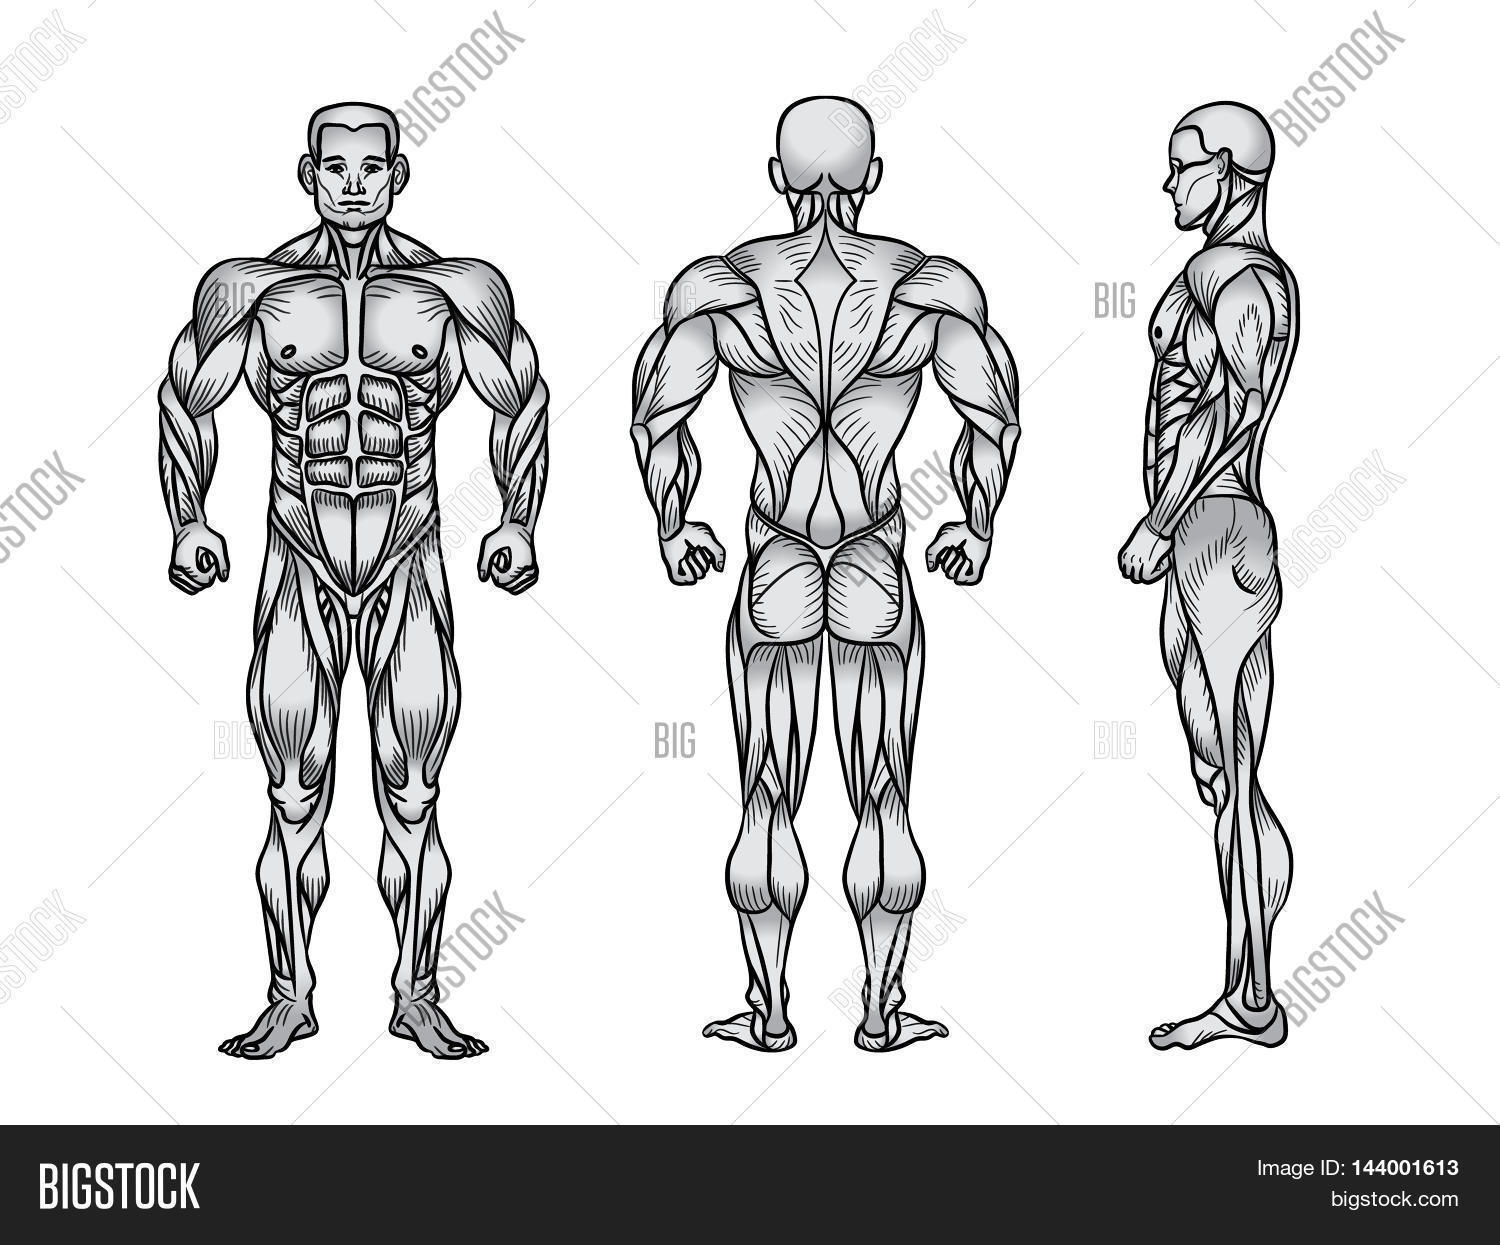 Anatomy Male Muscular System, Image & Photo